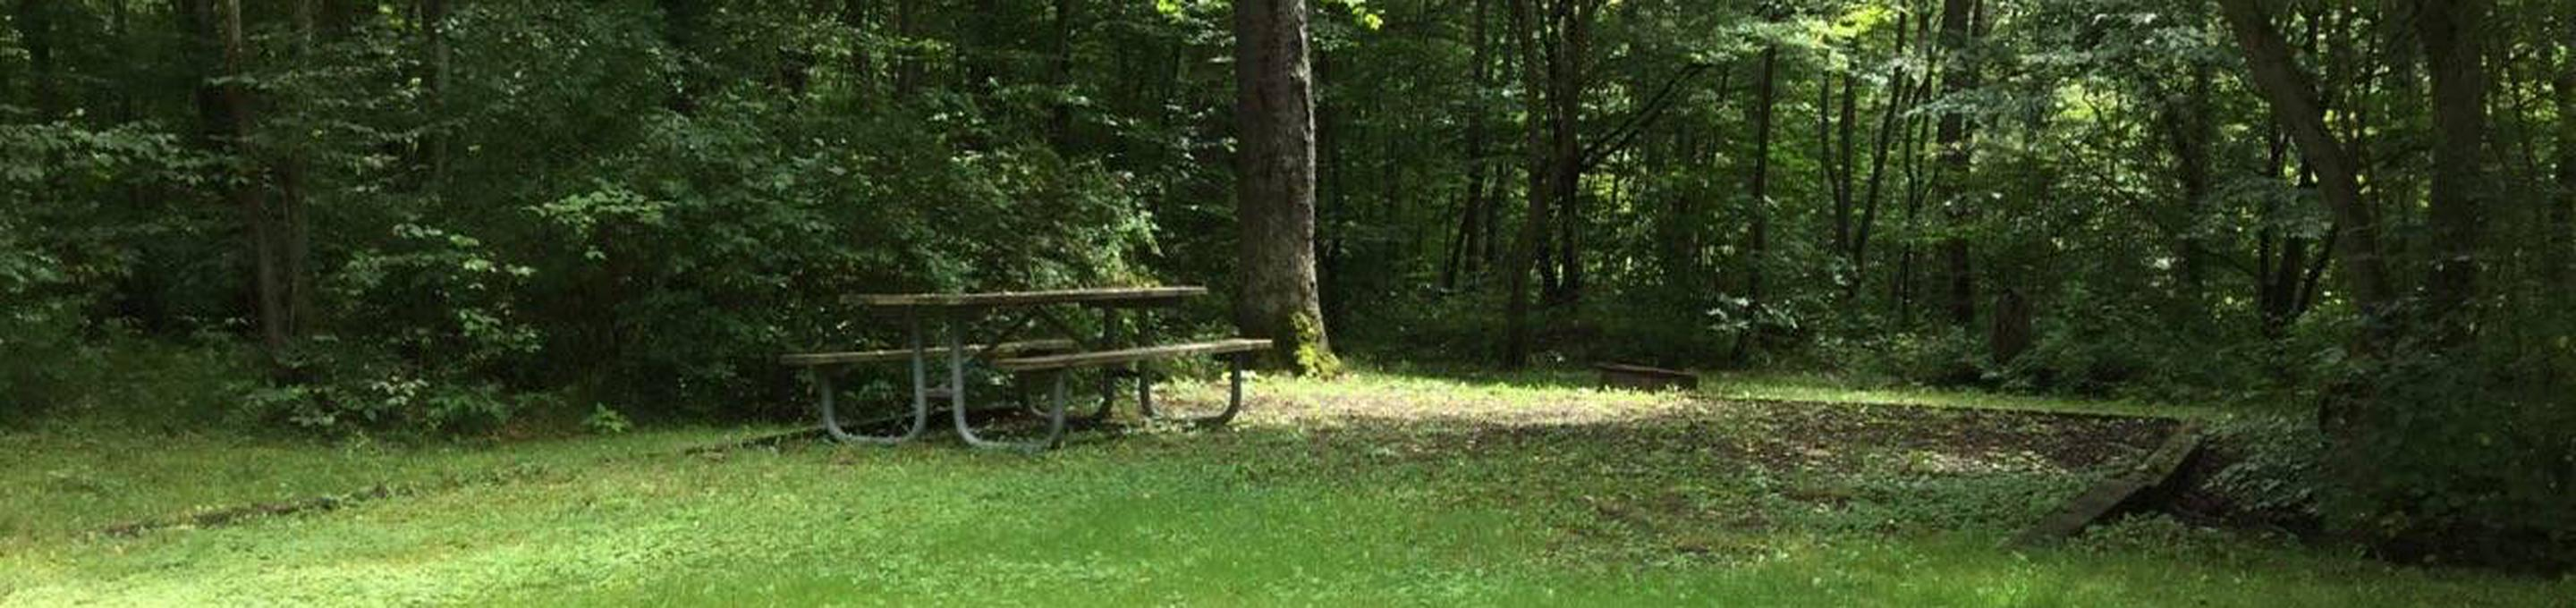 Twin Lakes Recreation Area: Site 42